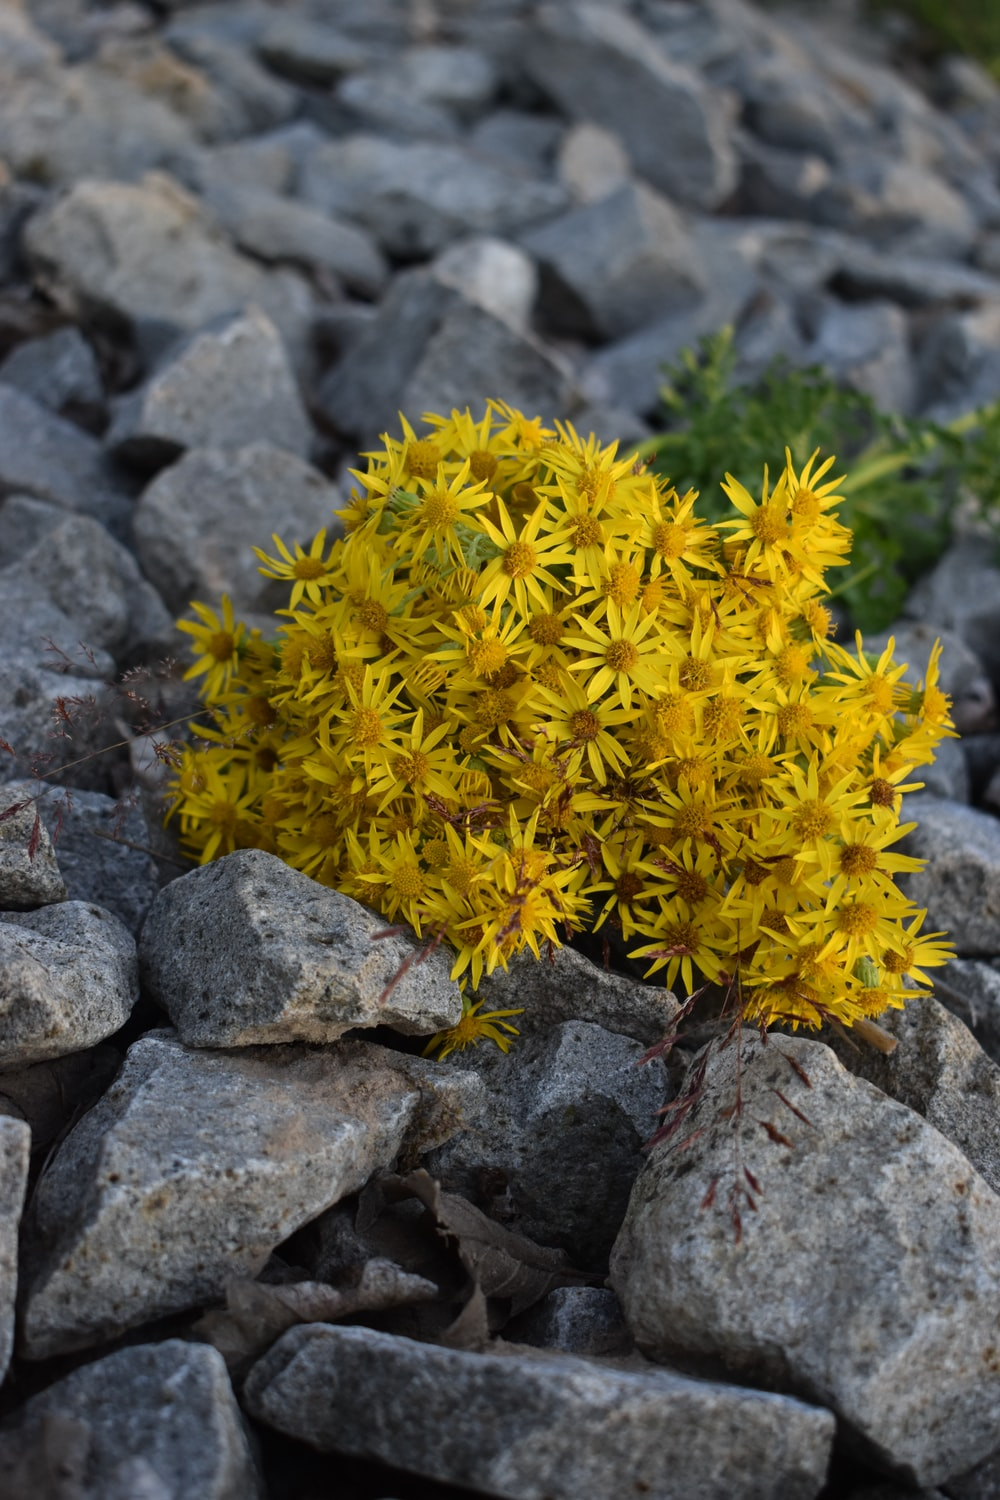 yellow petaled flowers close-up photography